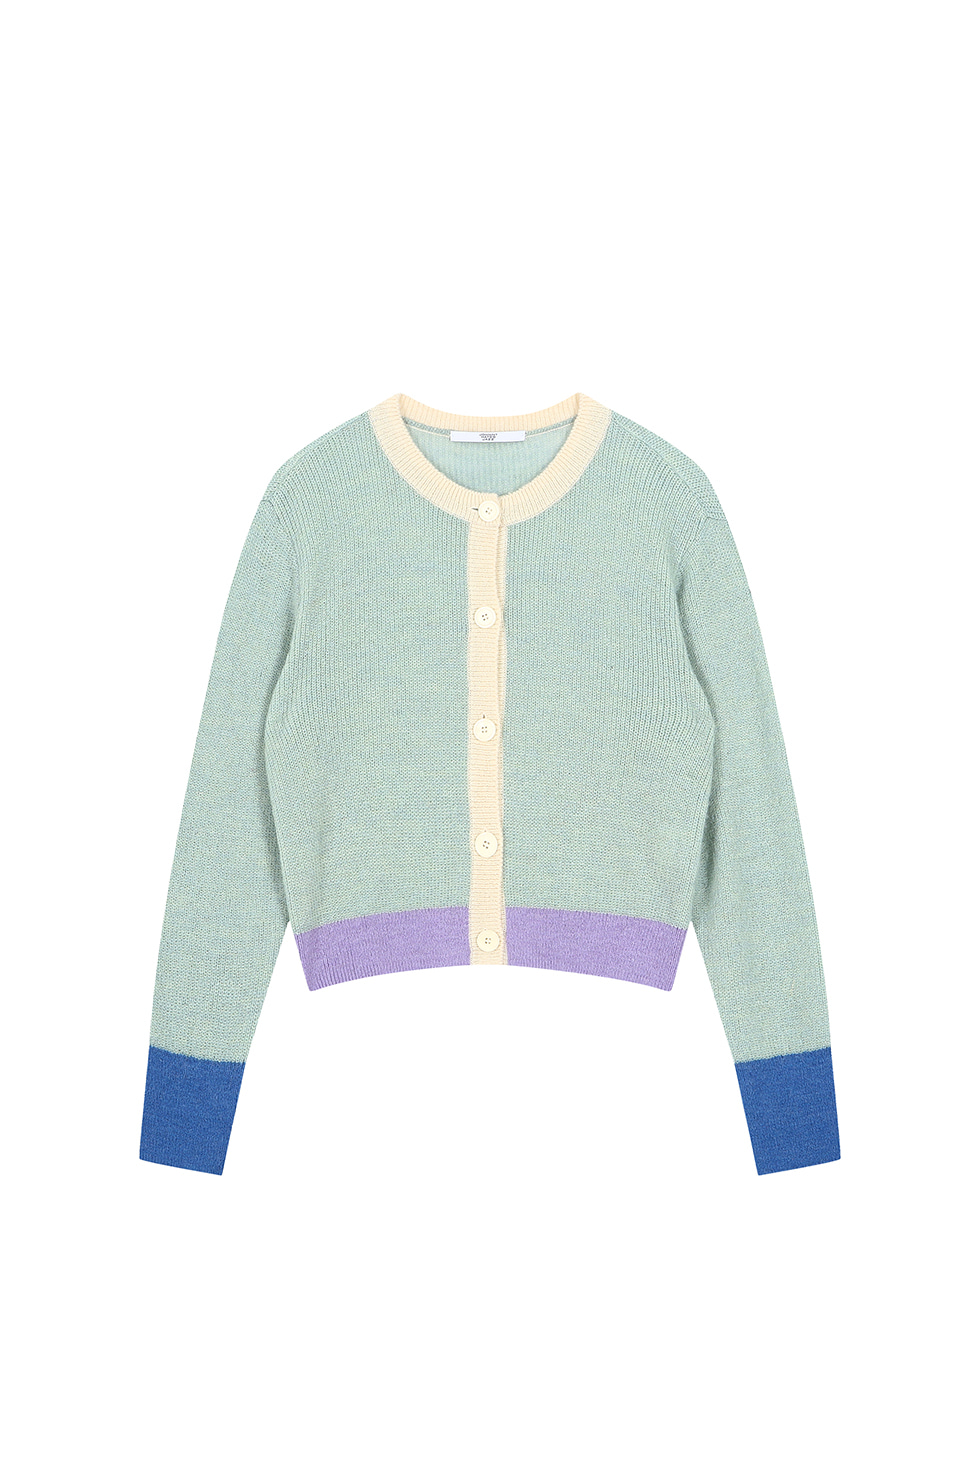 SOFT COLOR BLOCK CARDIGAN - MINT